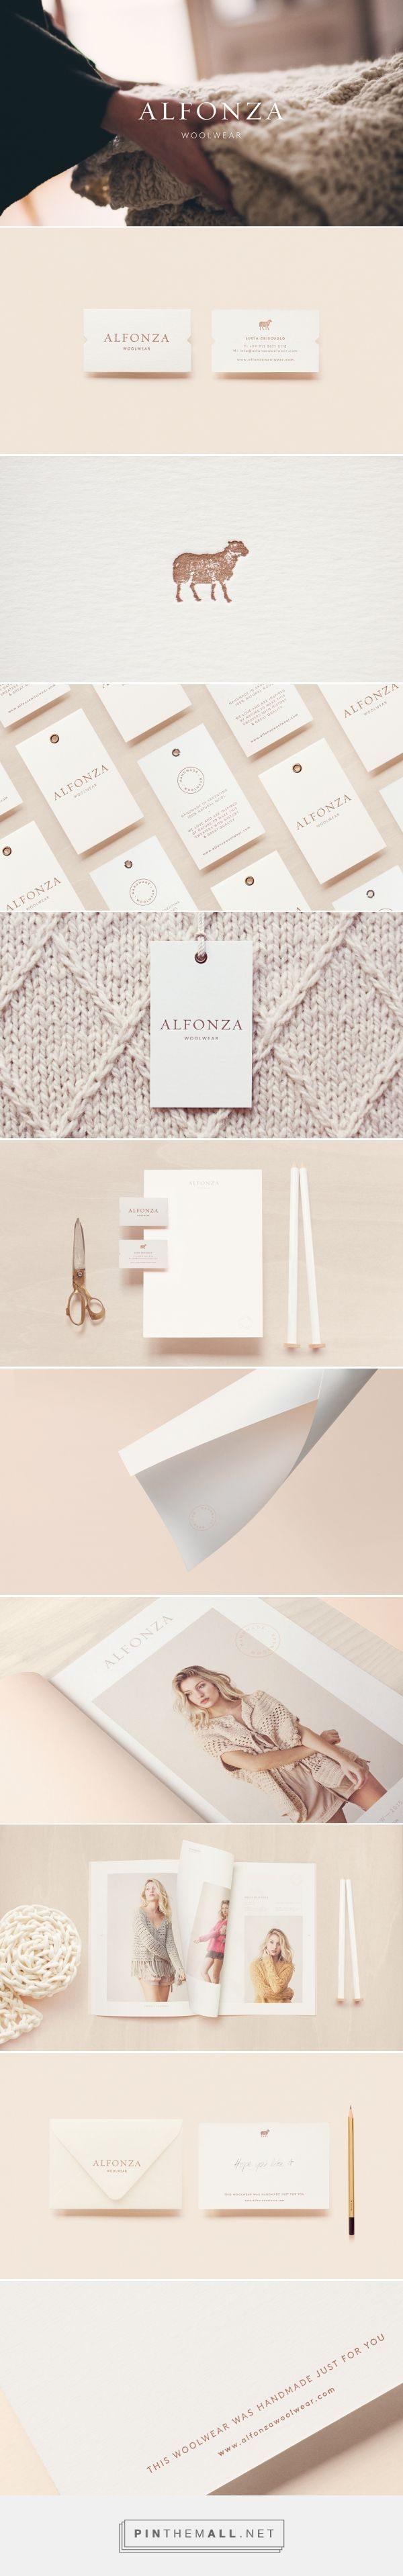 Alfonza Woolwear Fashion Branding by We are Asis | Fivestar Branding Agency – Design and Branding Agency & Inspiration Gallery: